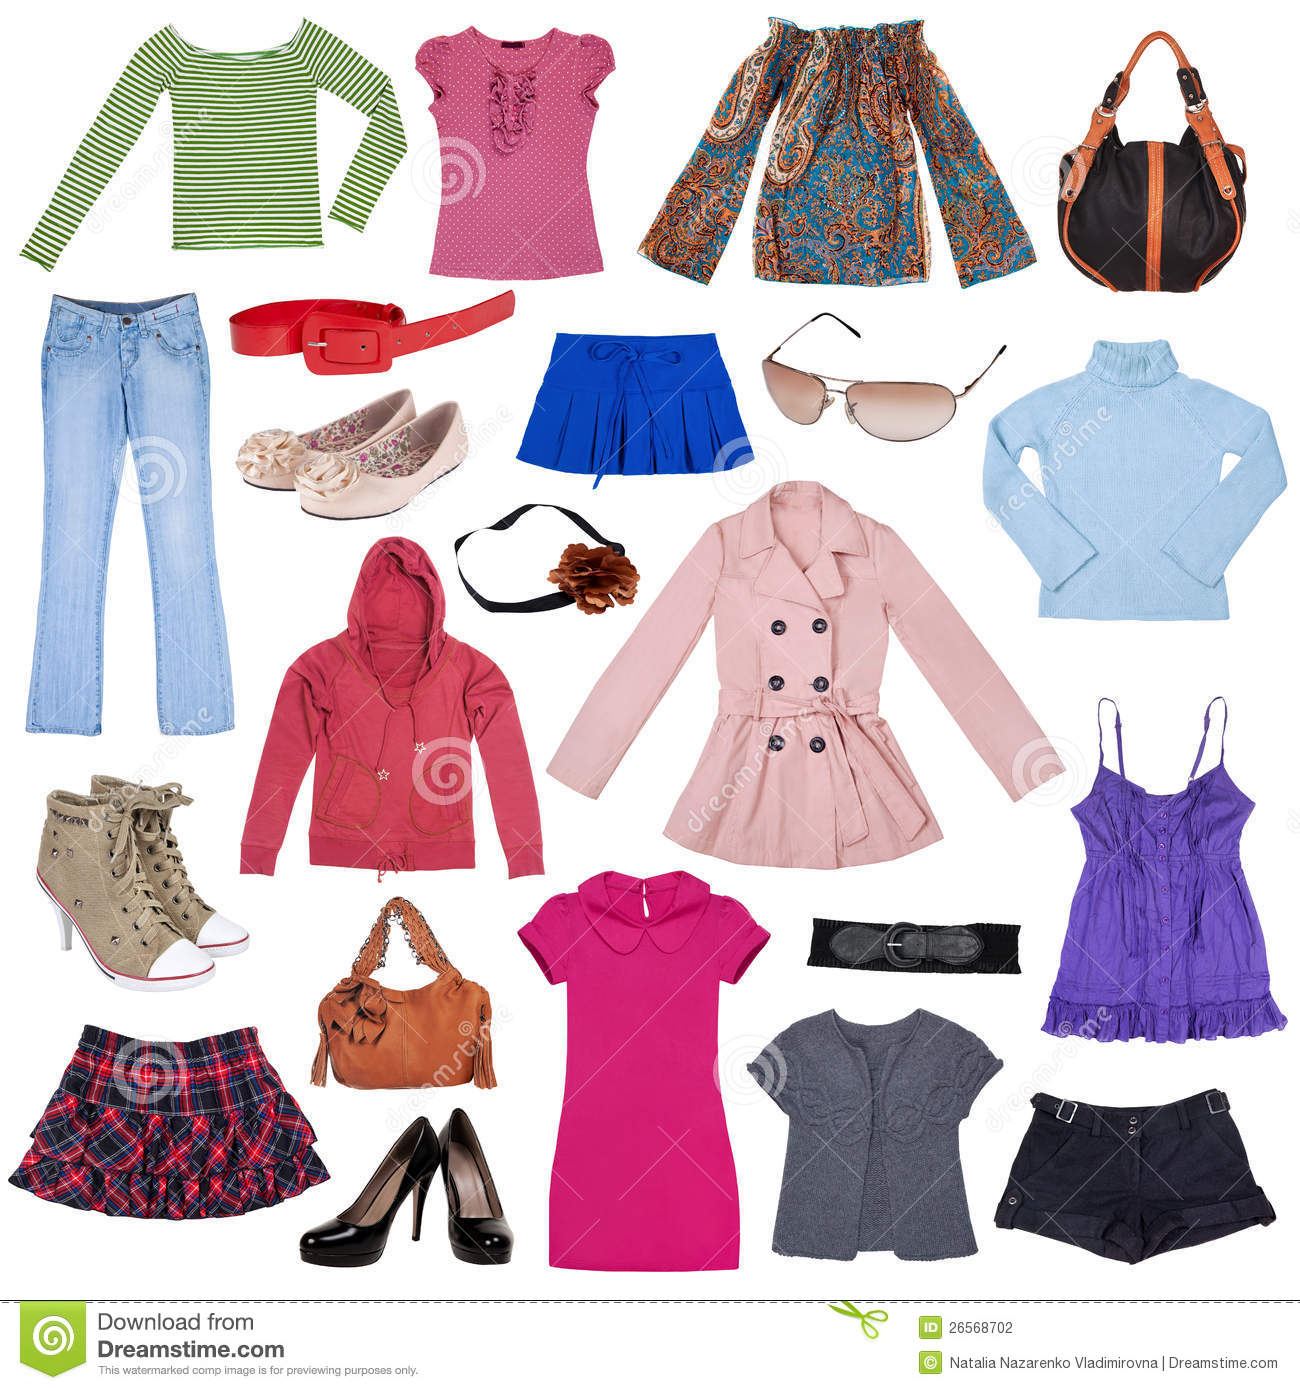 Download stunning free images about Clothes. Free for commercial use No attribution required.